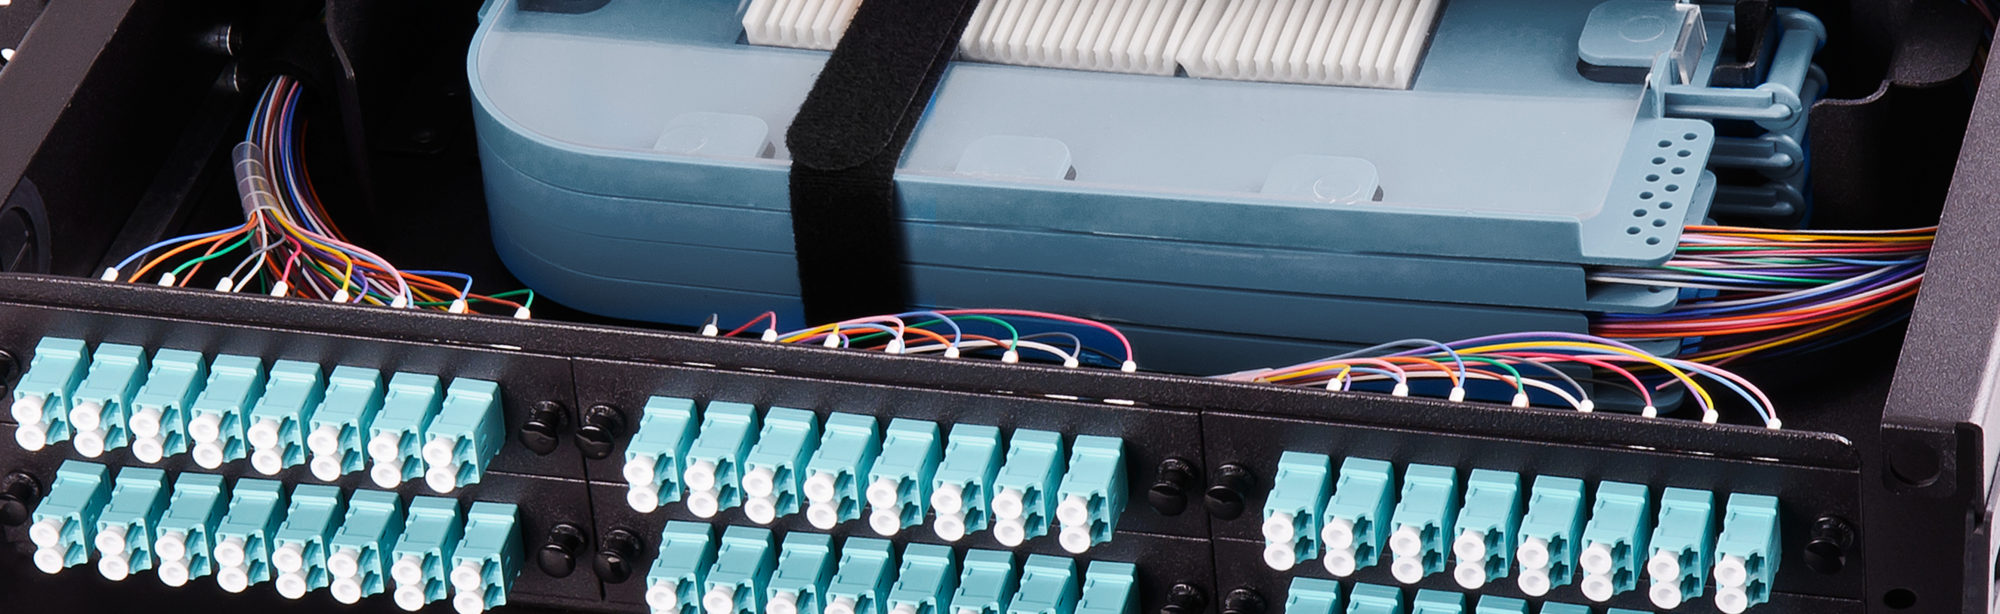 Optical Fiber Signamax Patch Cable Cord Or Jumper Is An Eight Wire That Solutions Brings Advance Connectors Adapters Customizable Enclosures And Accessories To The Vastly Diverse High Speed Data